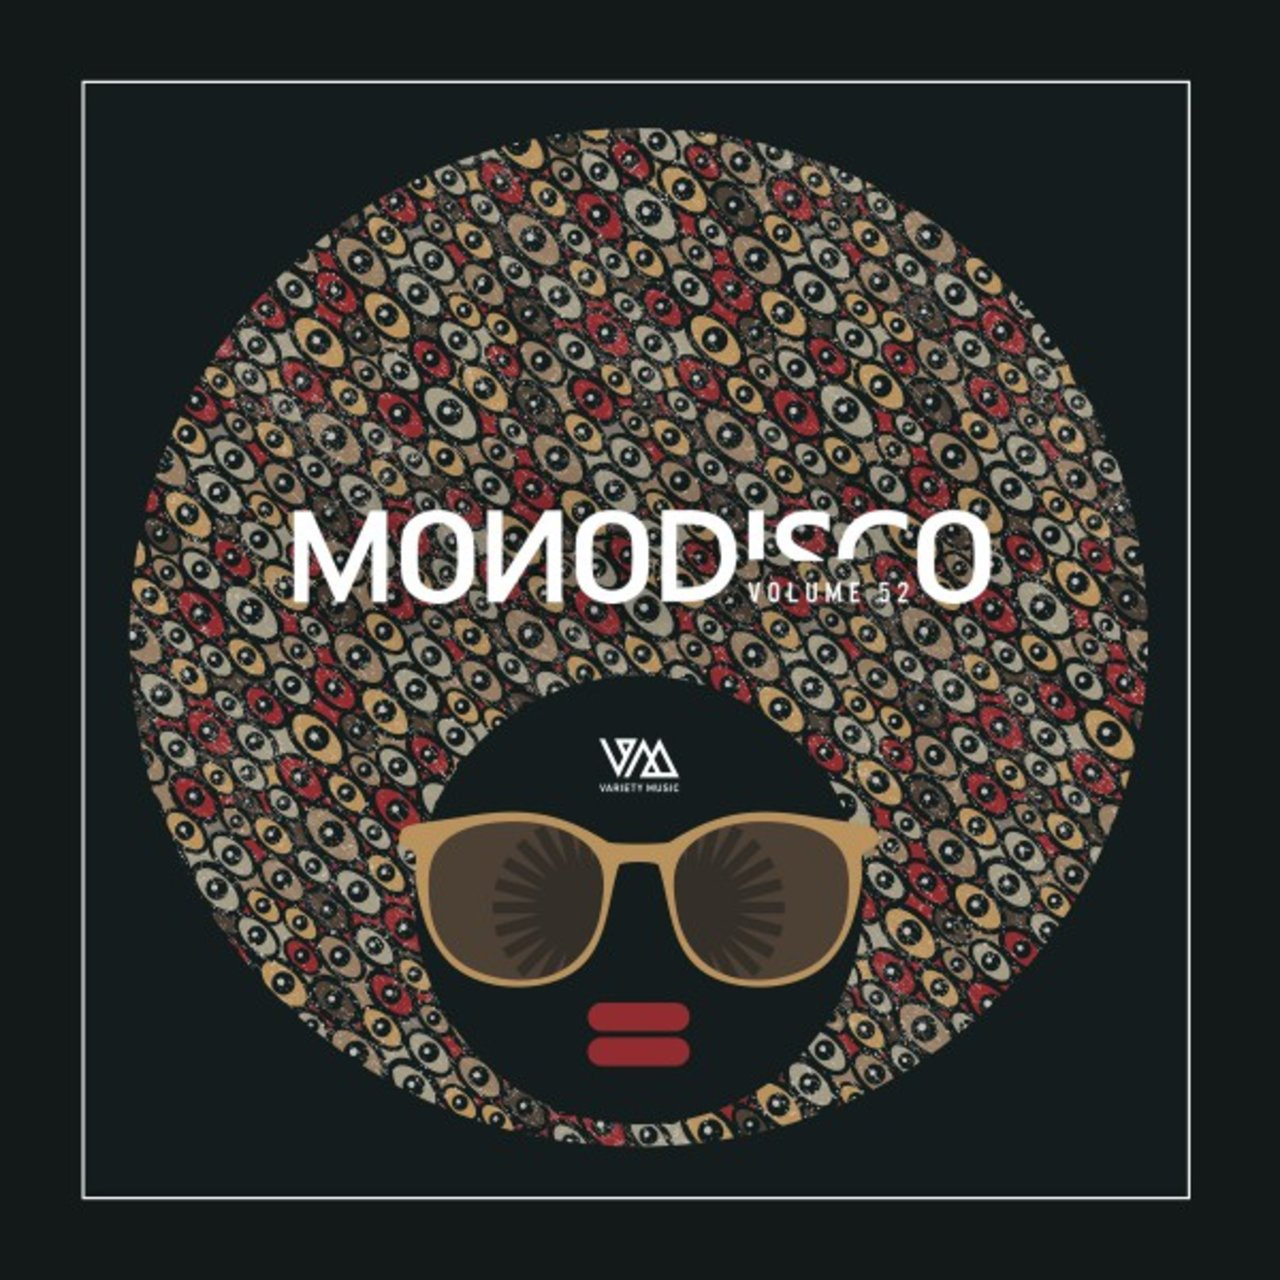 Monodisco, Vol. 52